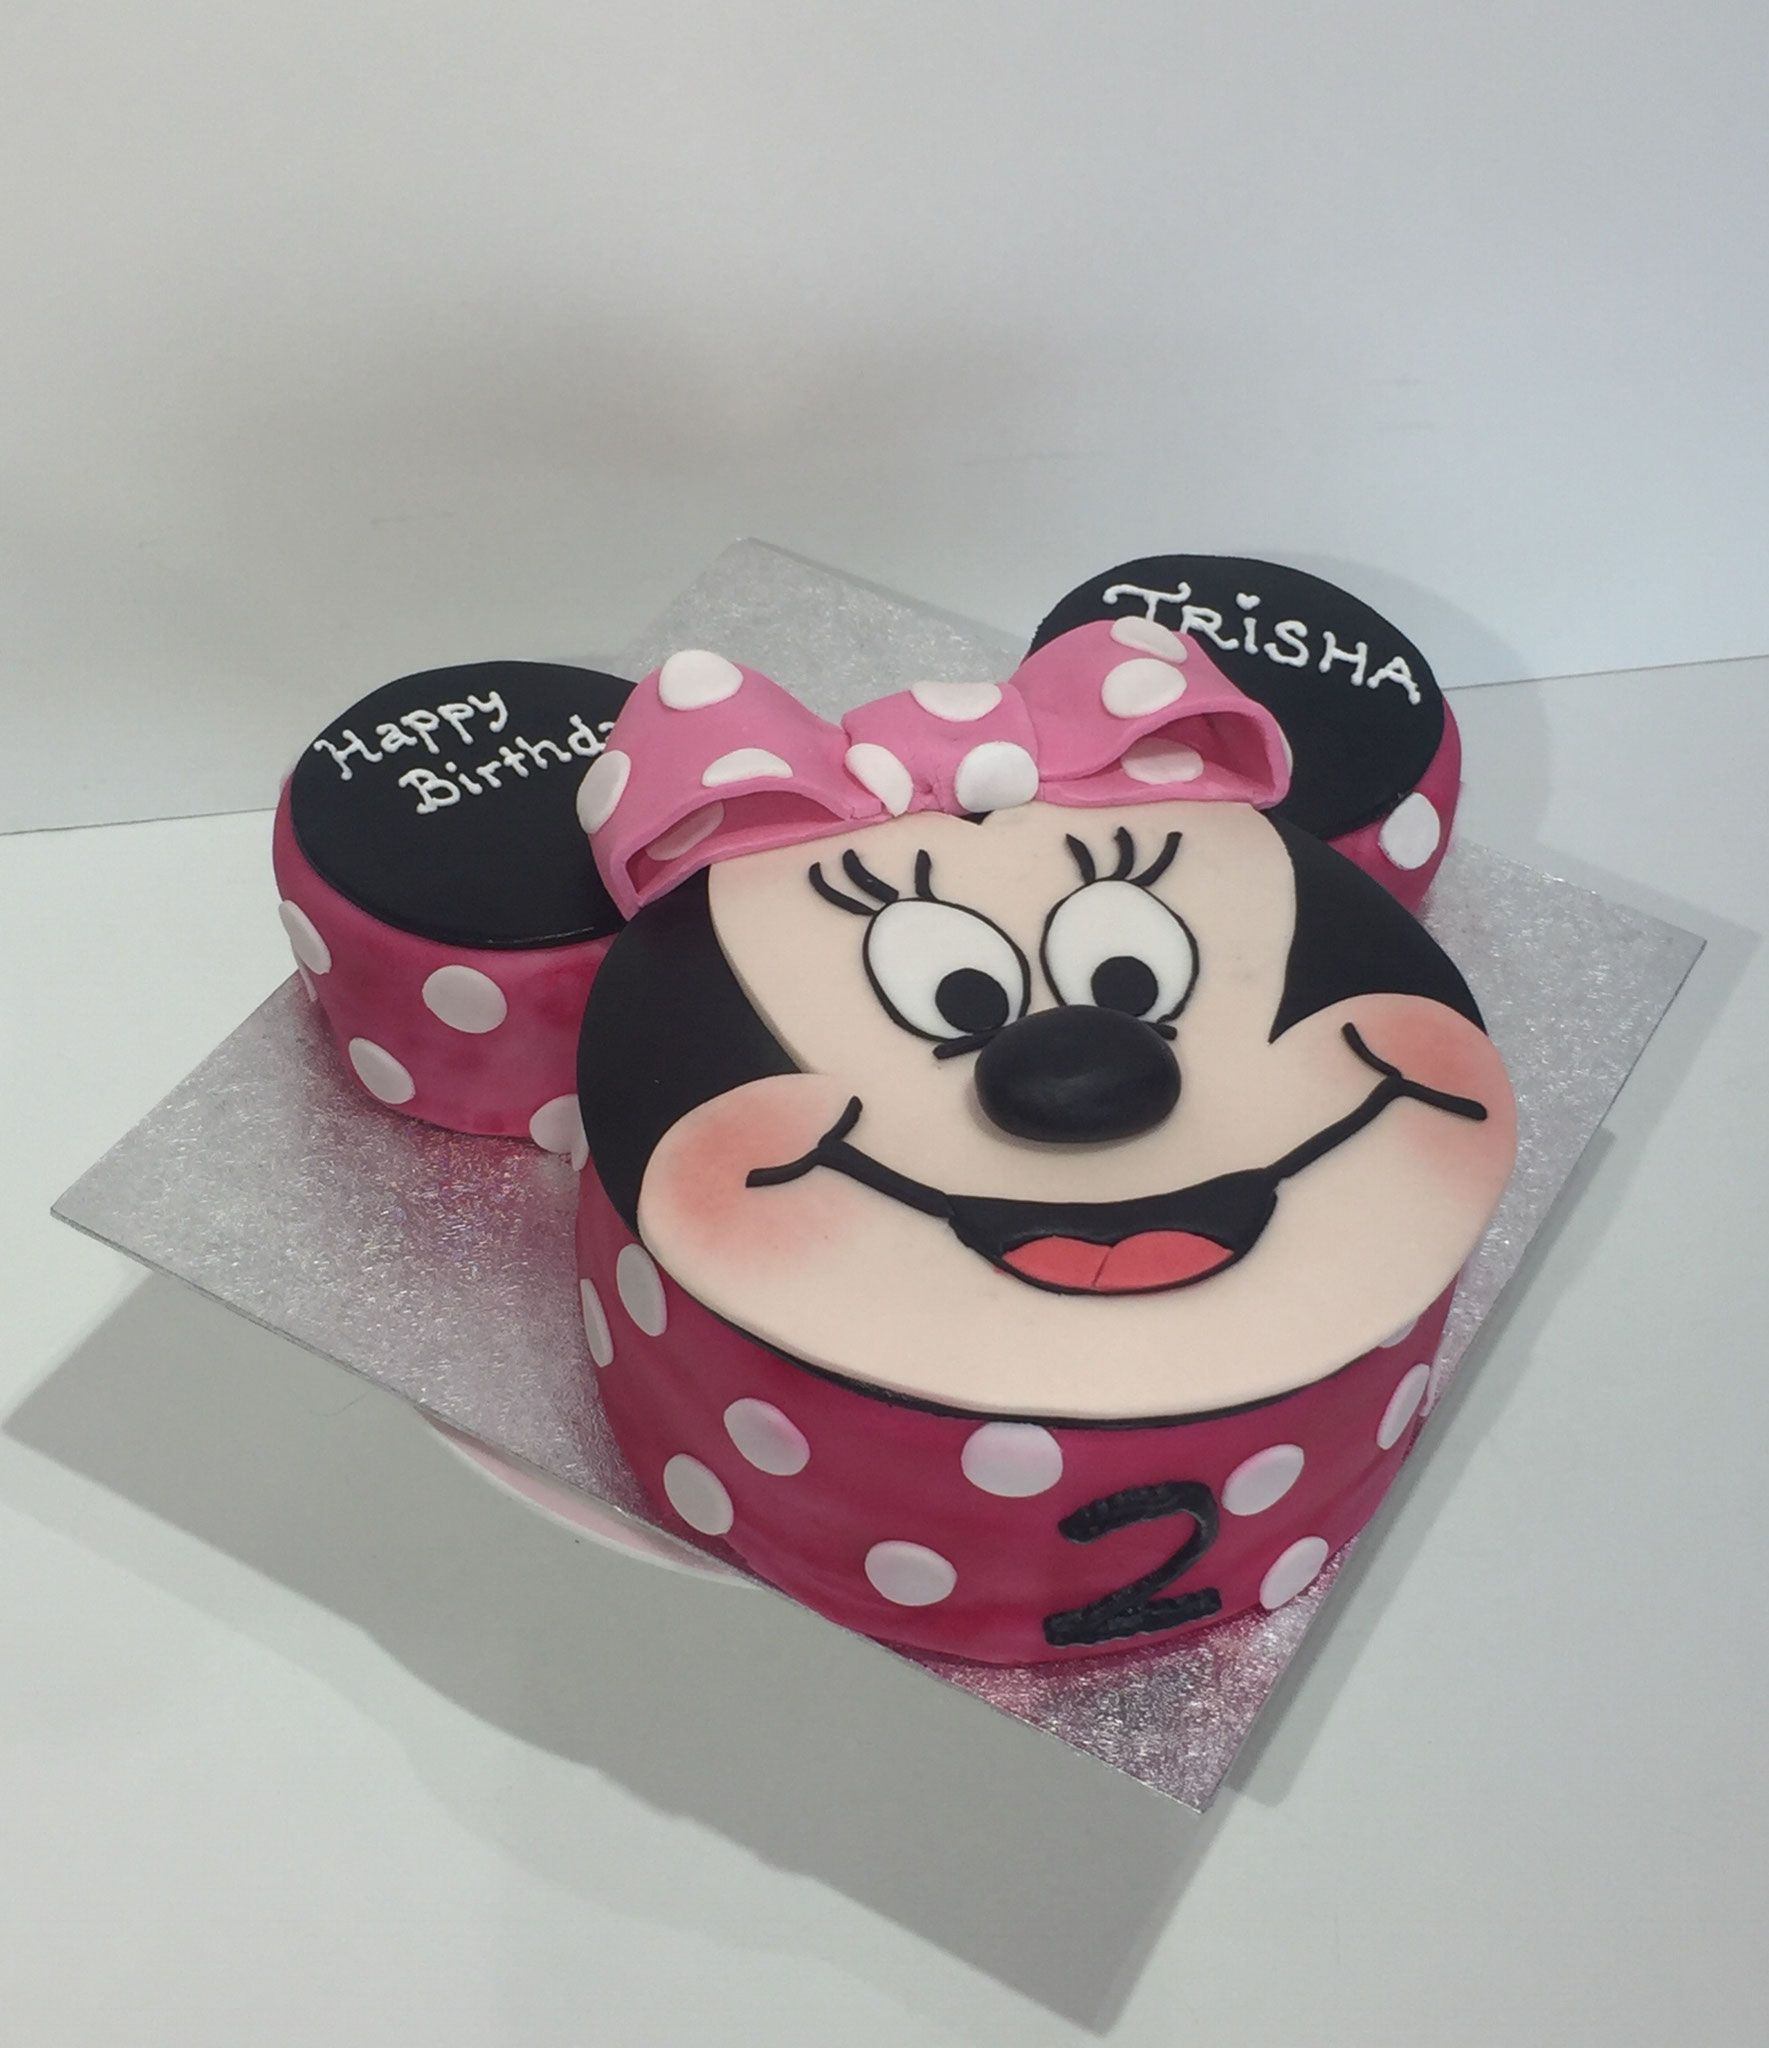 minnie mouse cake minnie maus torte. Black Bedroom Furniture Sets. Home Design Ideas